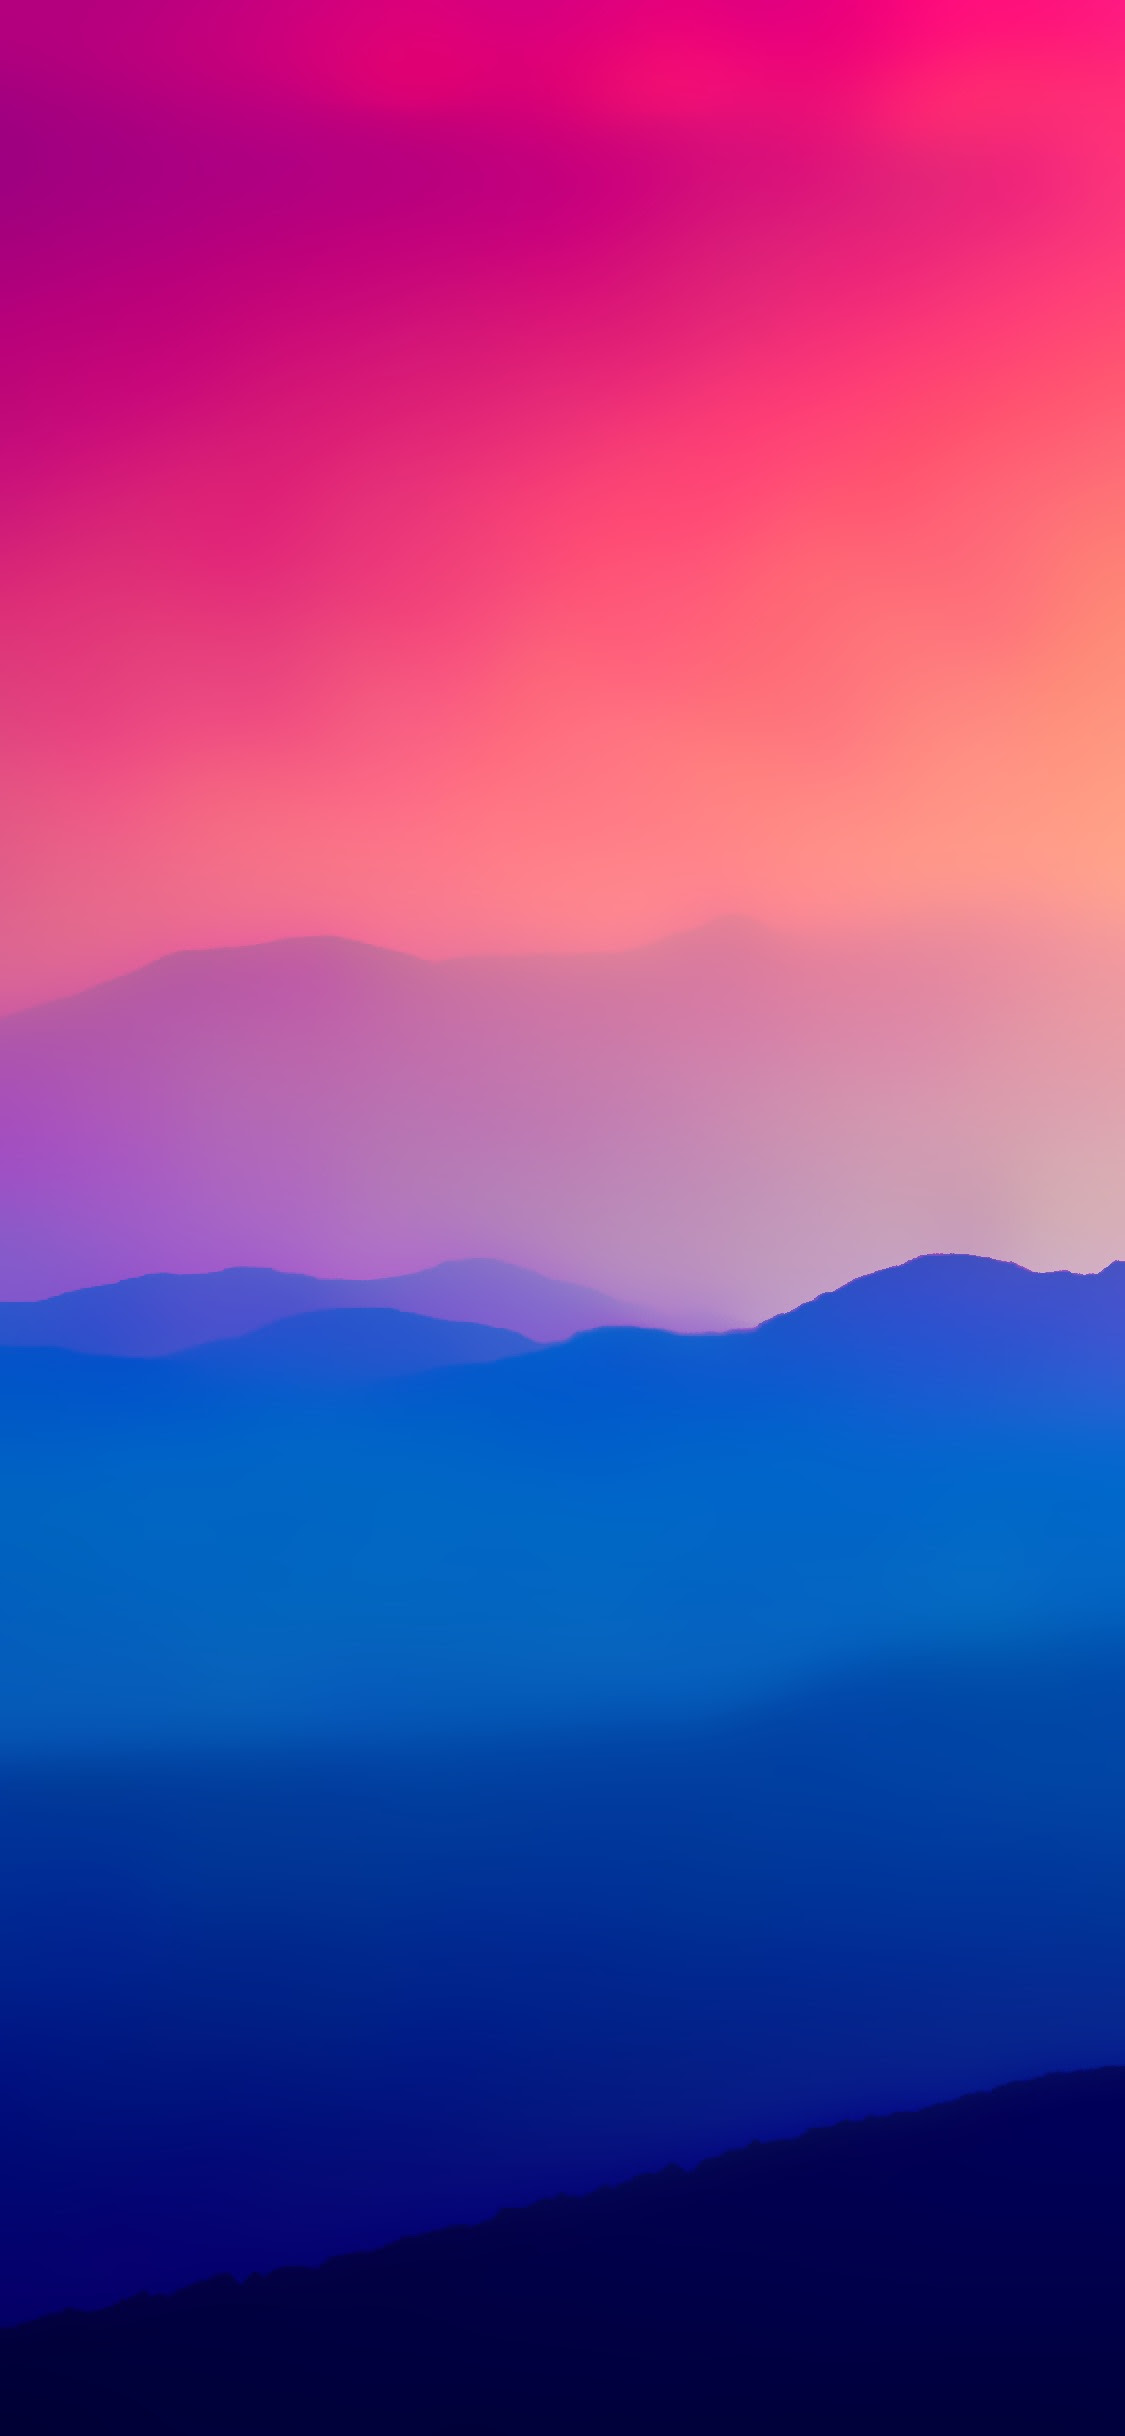 Vivid colors iPhone wallpaper pack